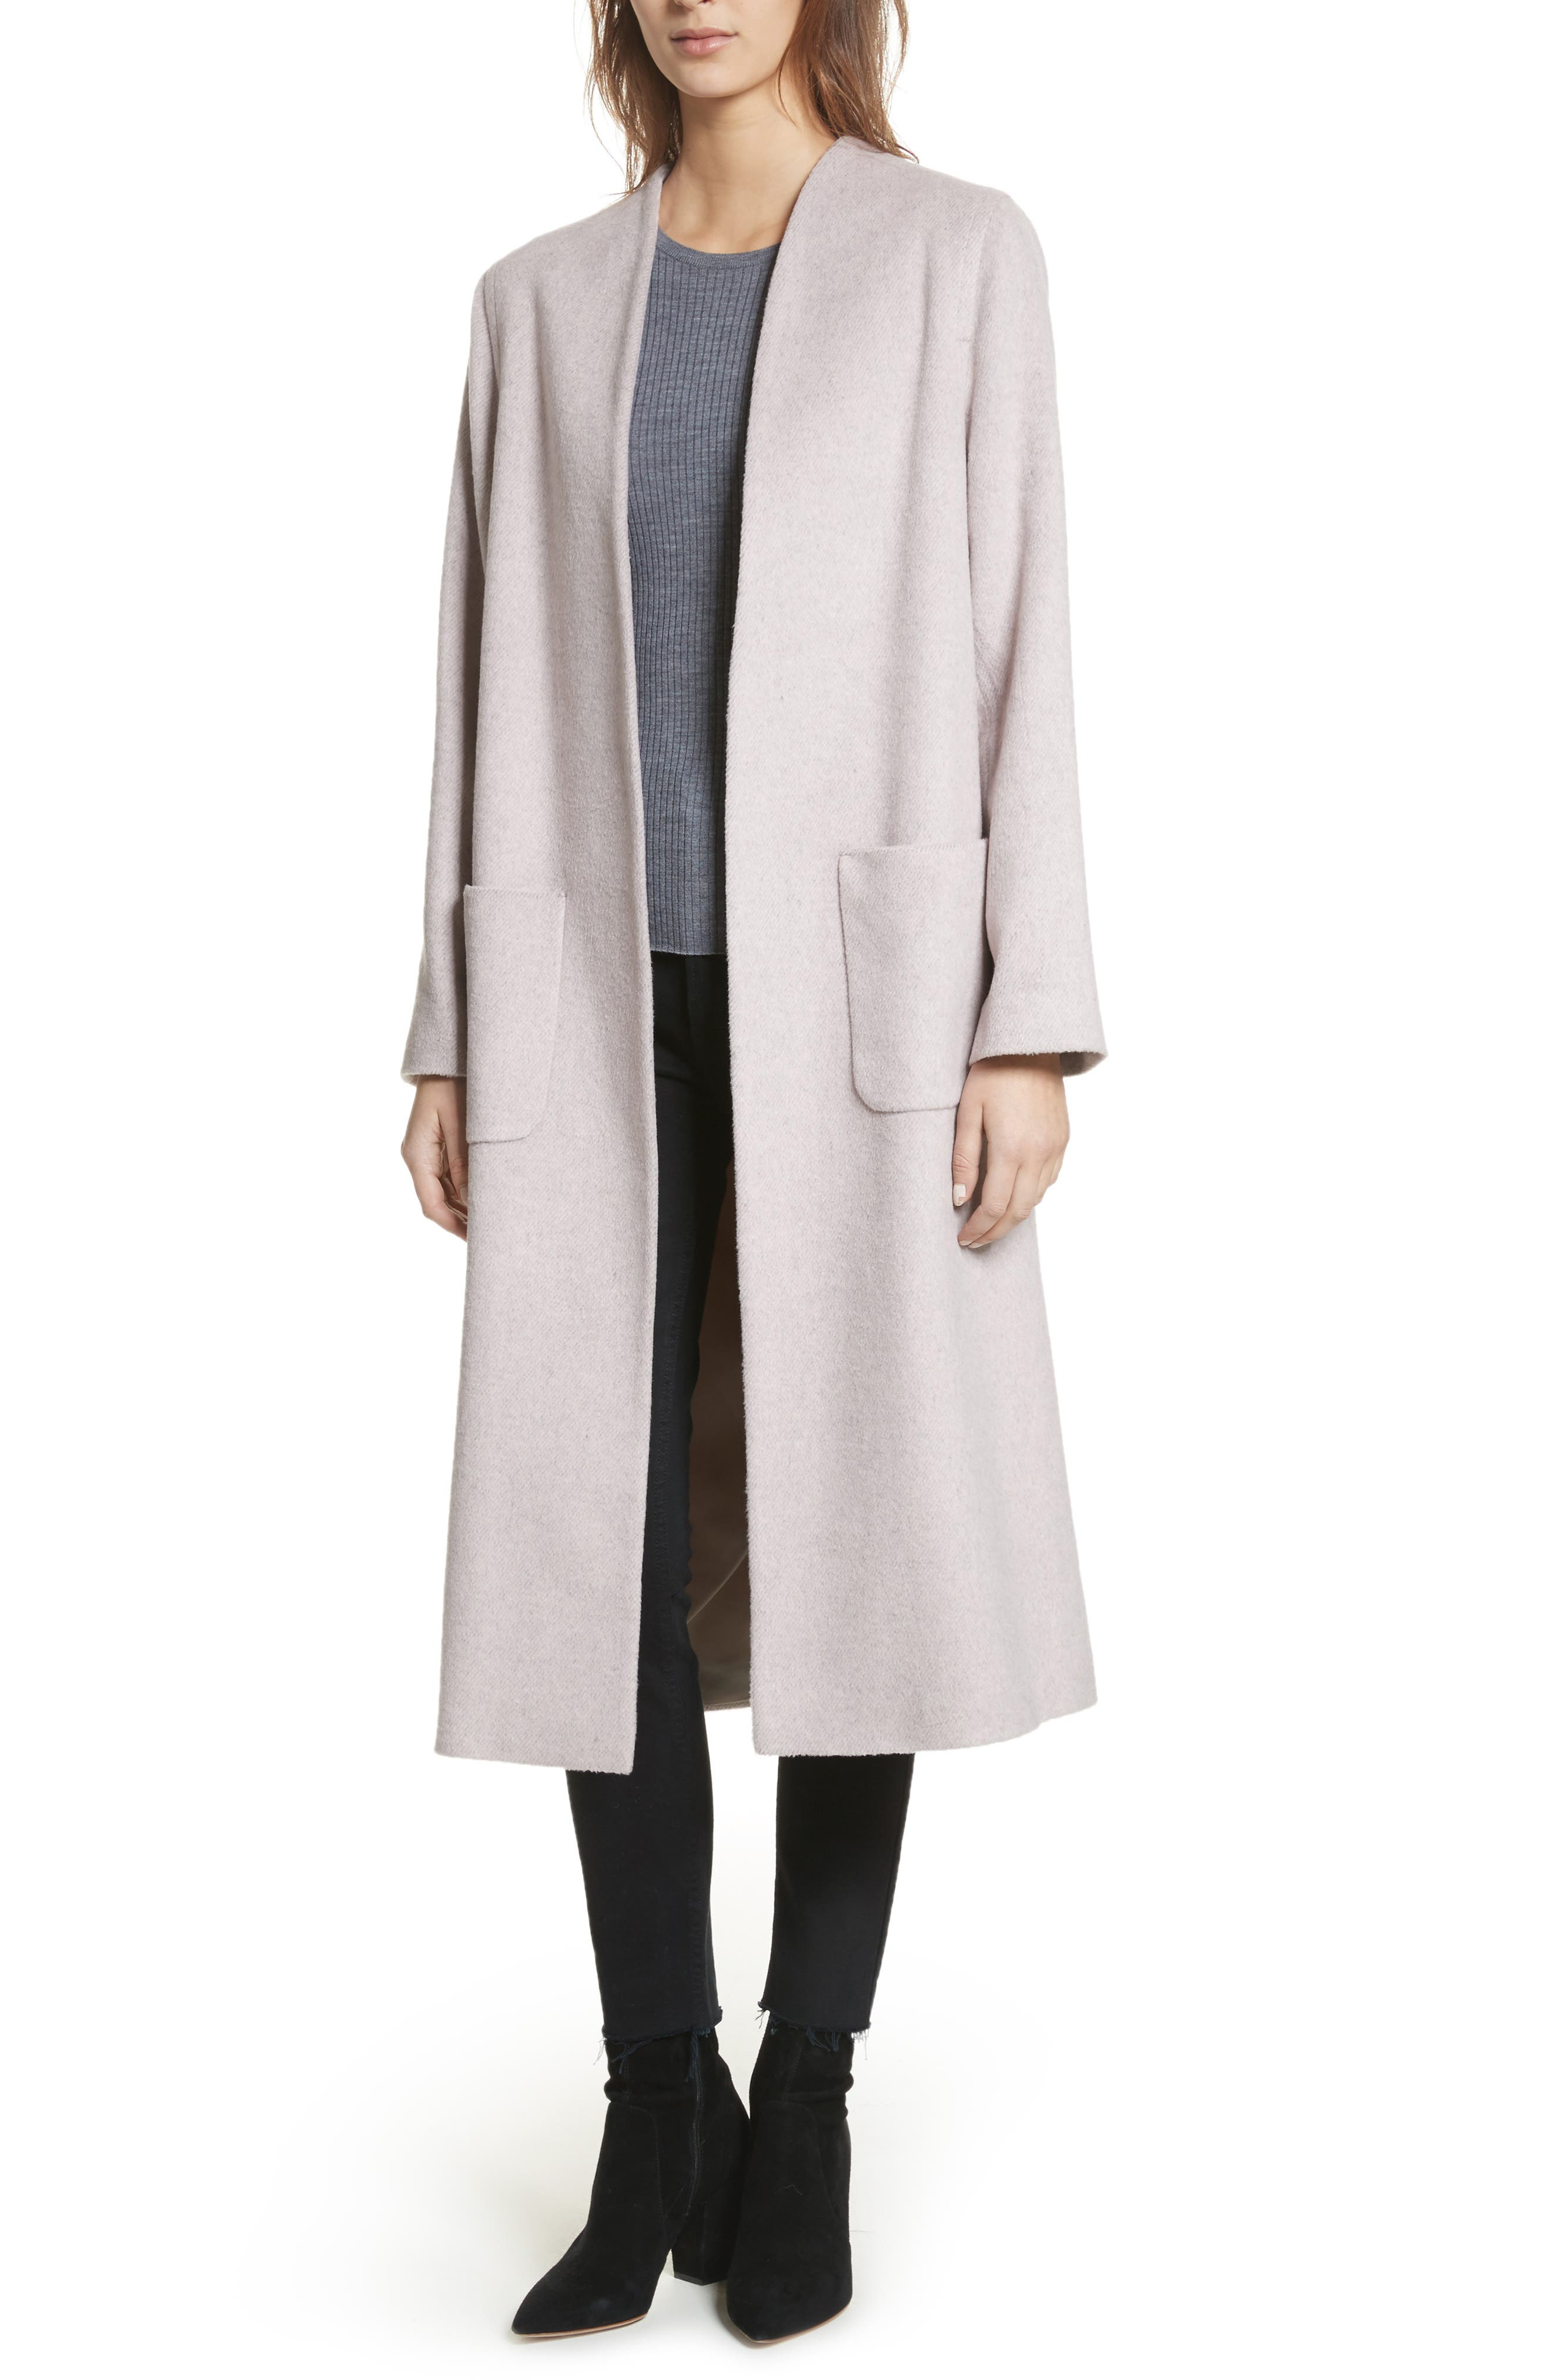 Helene Berman Edge to Edge Coat